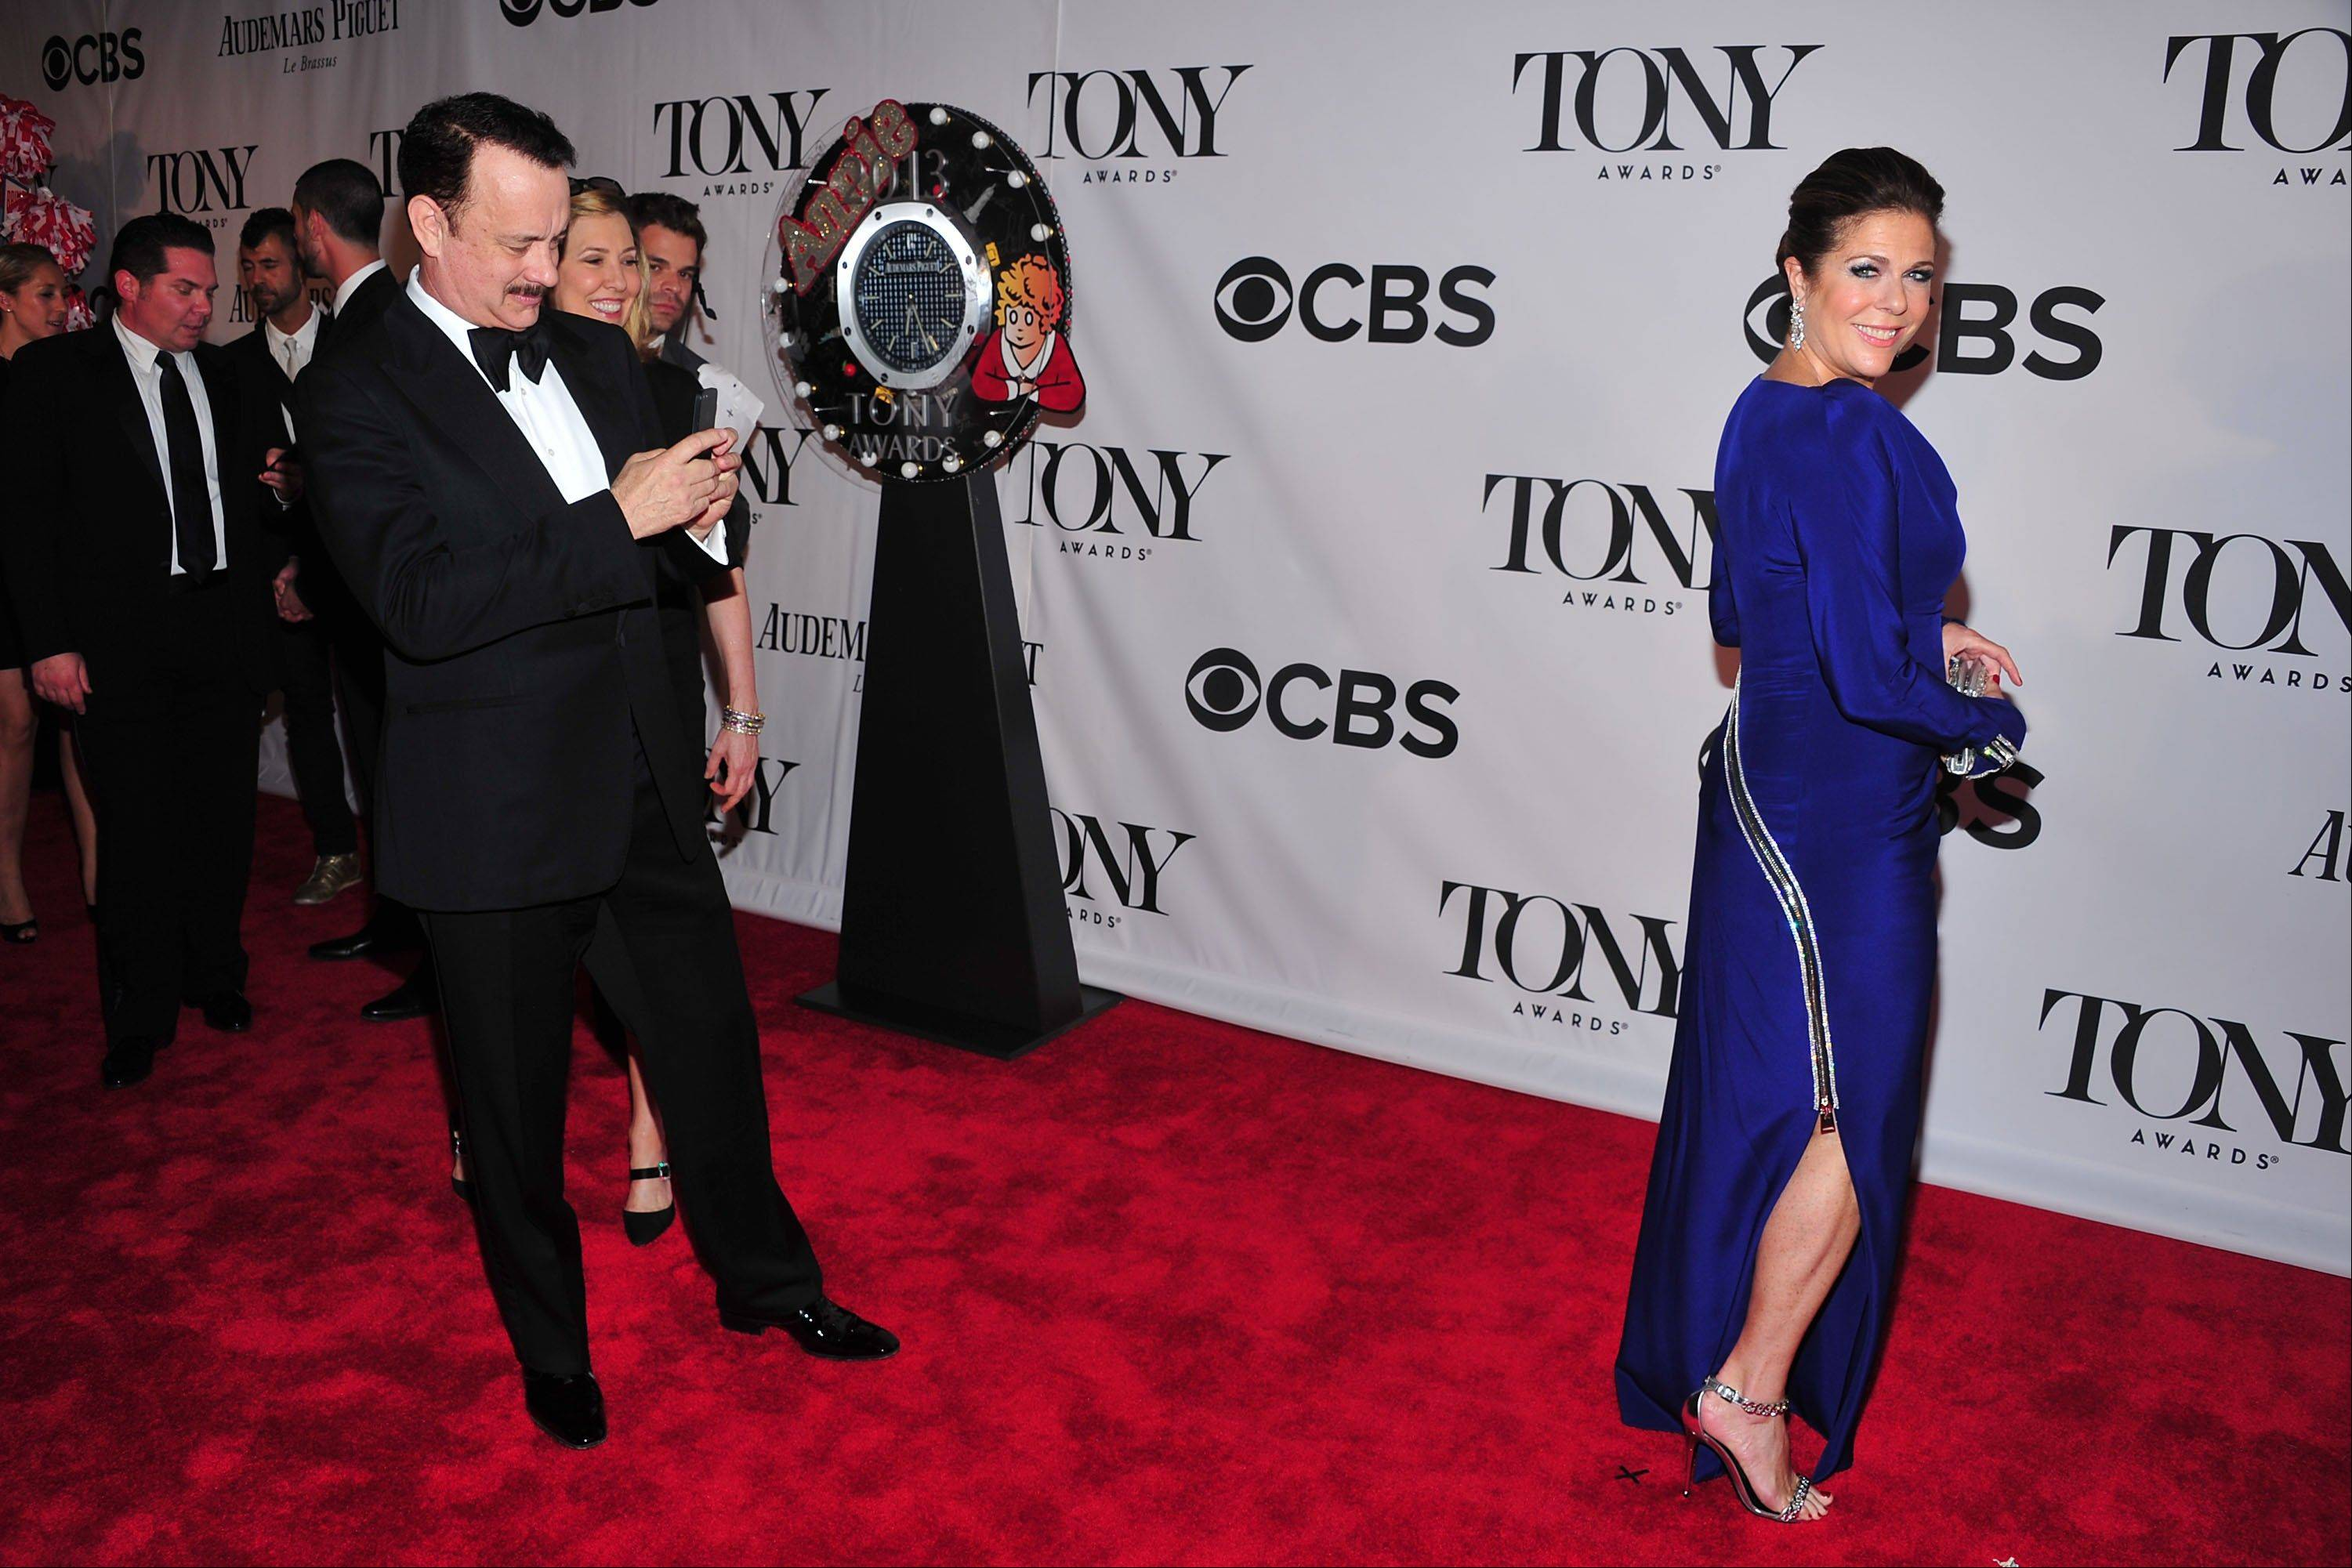 Tom Hanks and Rita Wilson arrives on the red carpet at the 67th Annual Tony Awards, on Sunday, June 9, 2013 in New York.